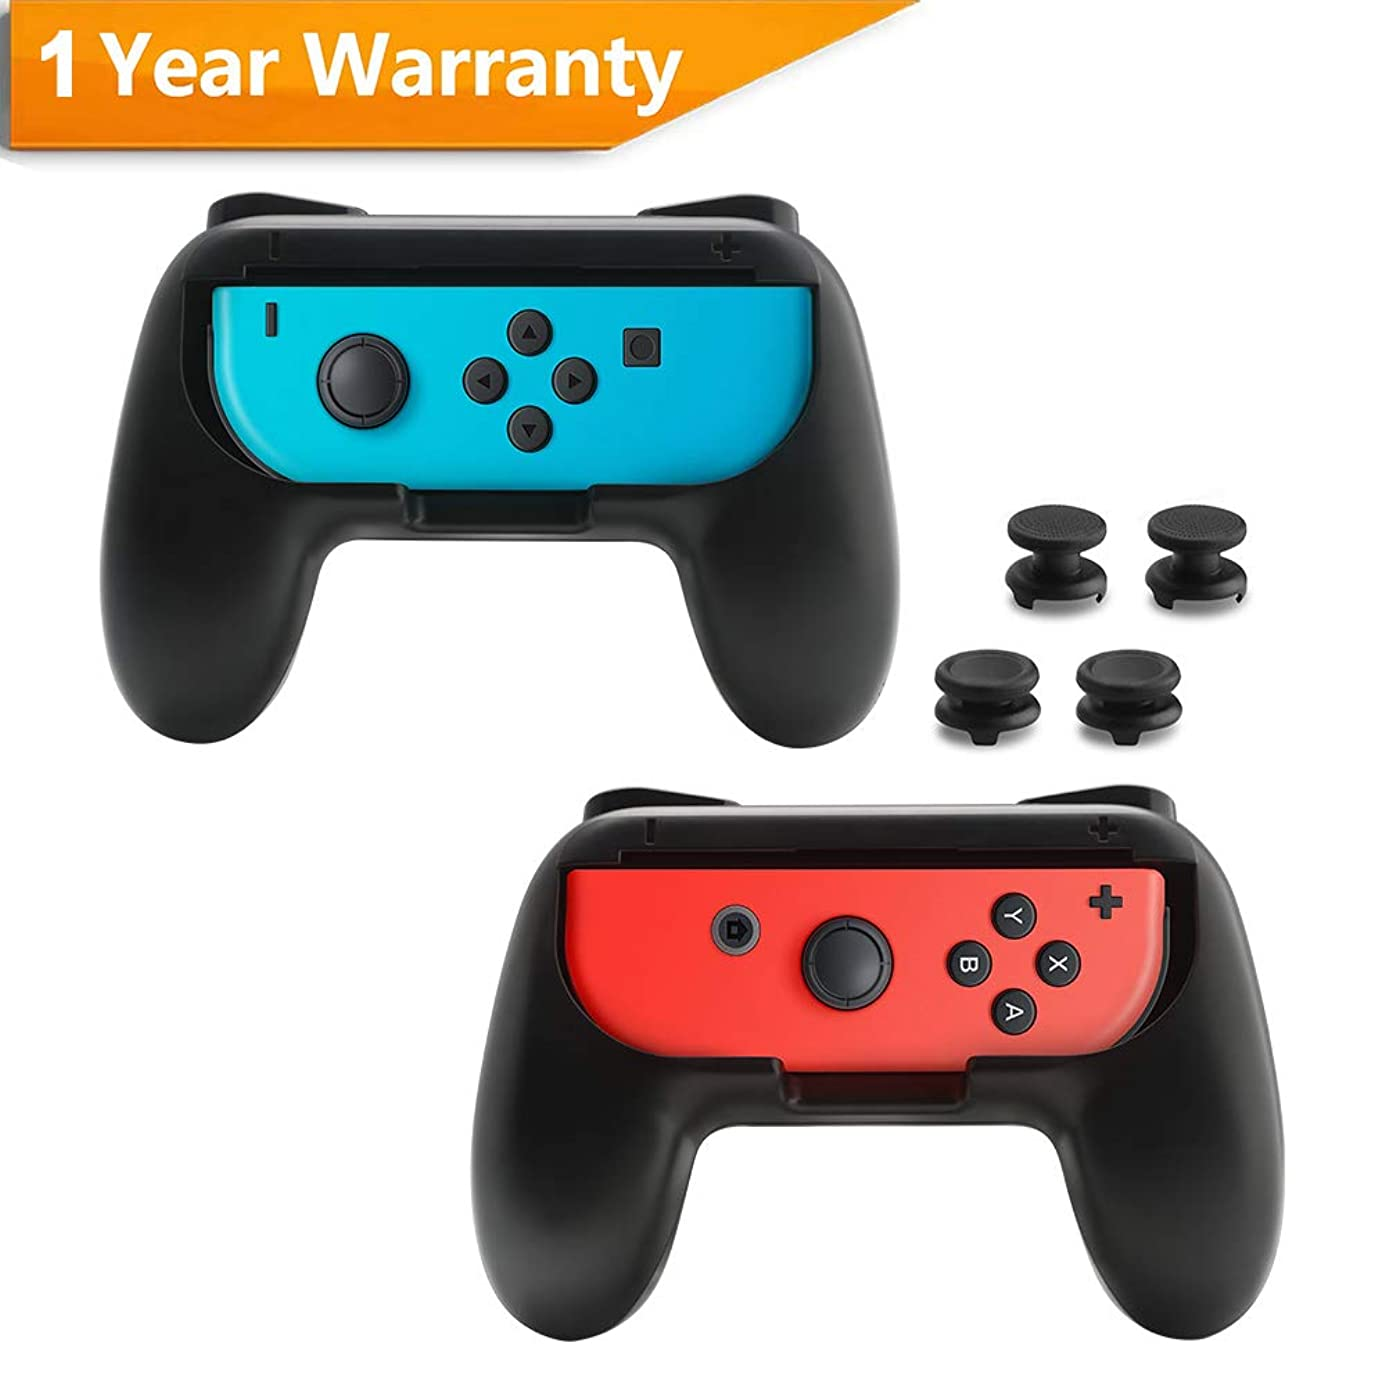 Rocketek Grips for Nintendo Switch Joy-Con, N-Switch Controller Grip with 4 Thumb Grip Caps (2 Normal+2 Extra Height), Wear-Resistant Handle Kit for Switch Joy Cons Controller, 2 Pack (Black)